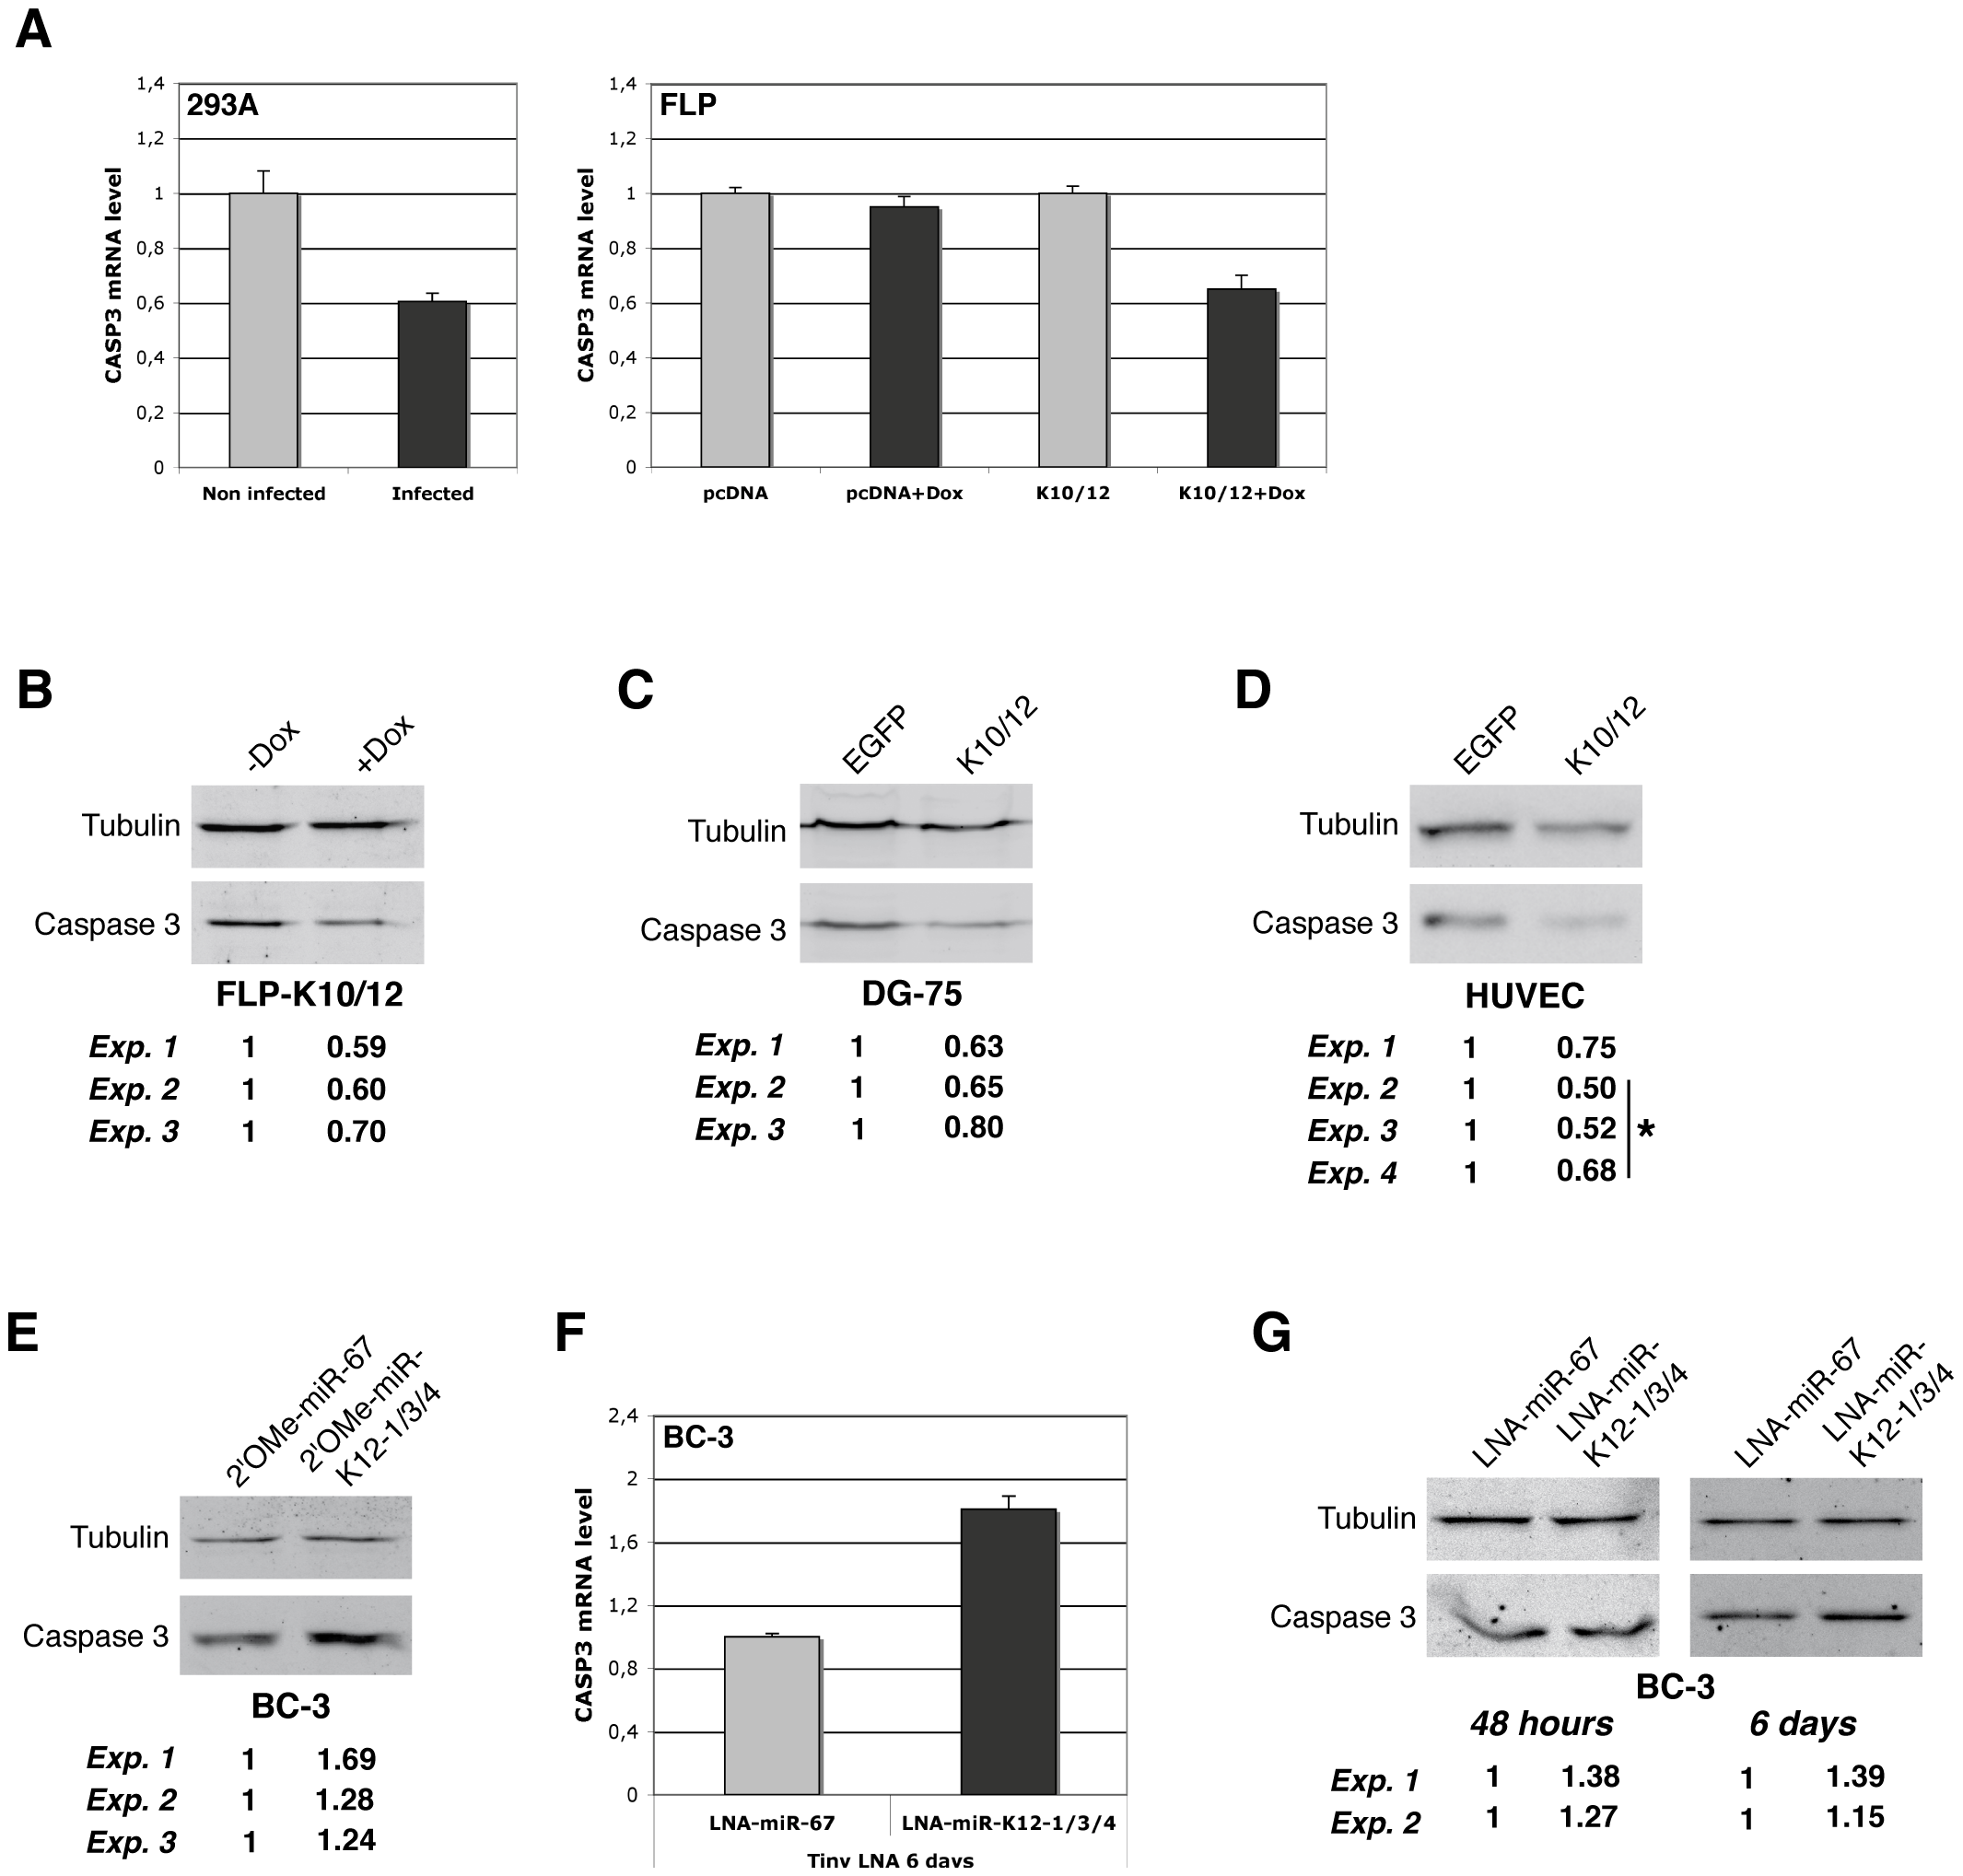 Endogenous Casp3 is regulated by KSHV miRNAs in different cell lines.